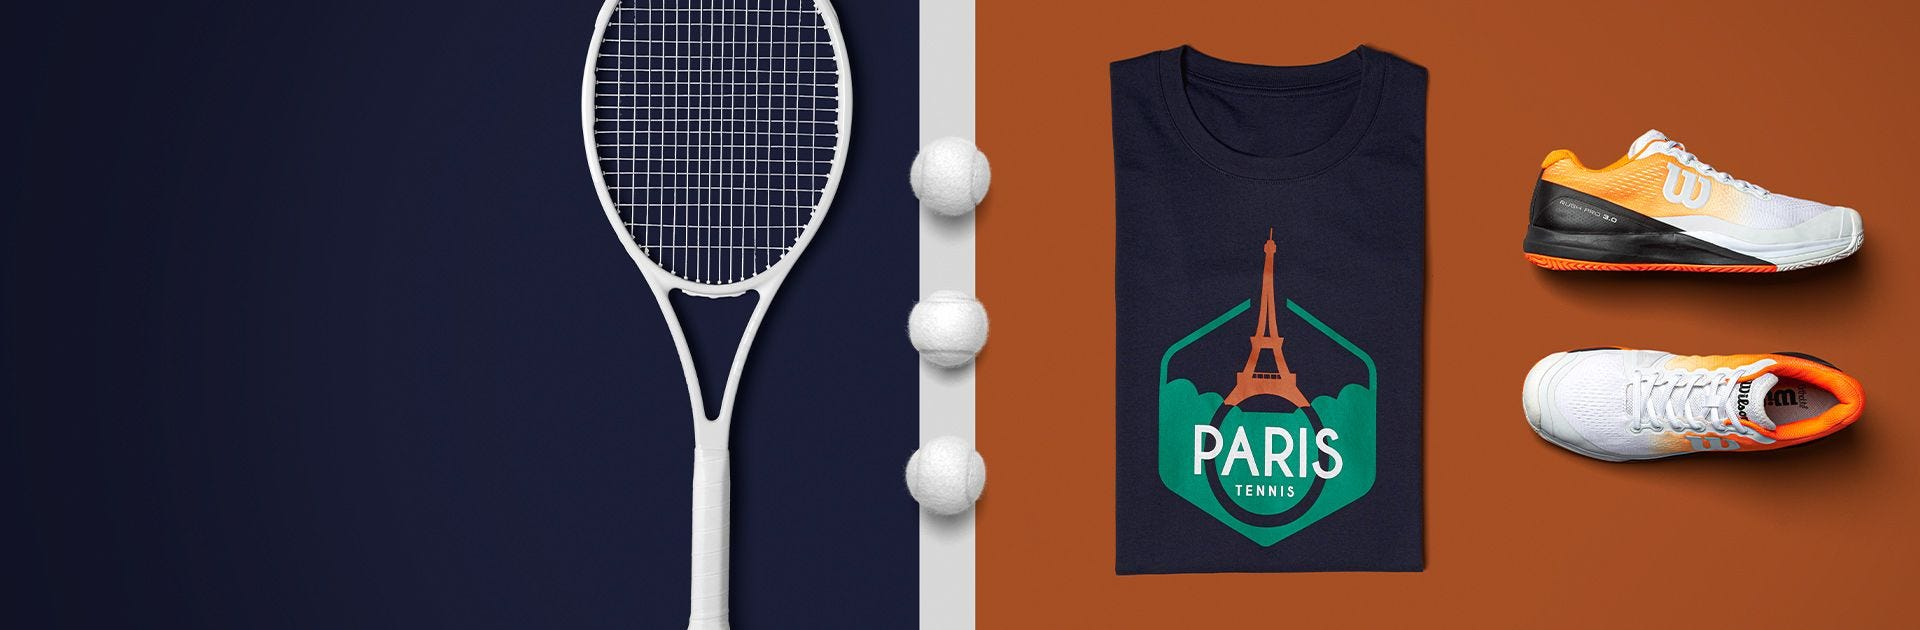 Paris collection of tennis items